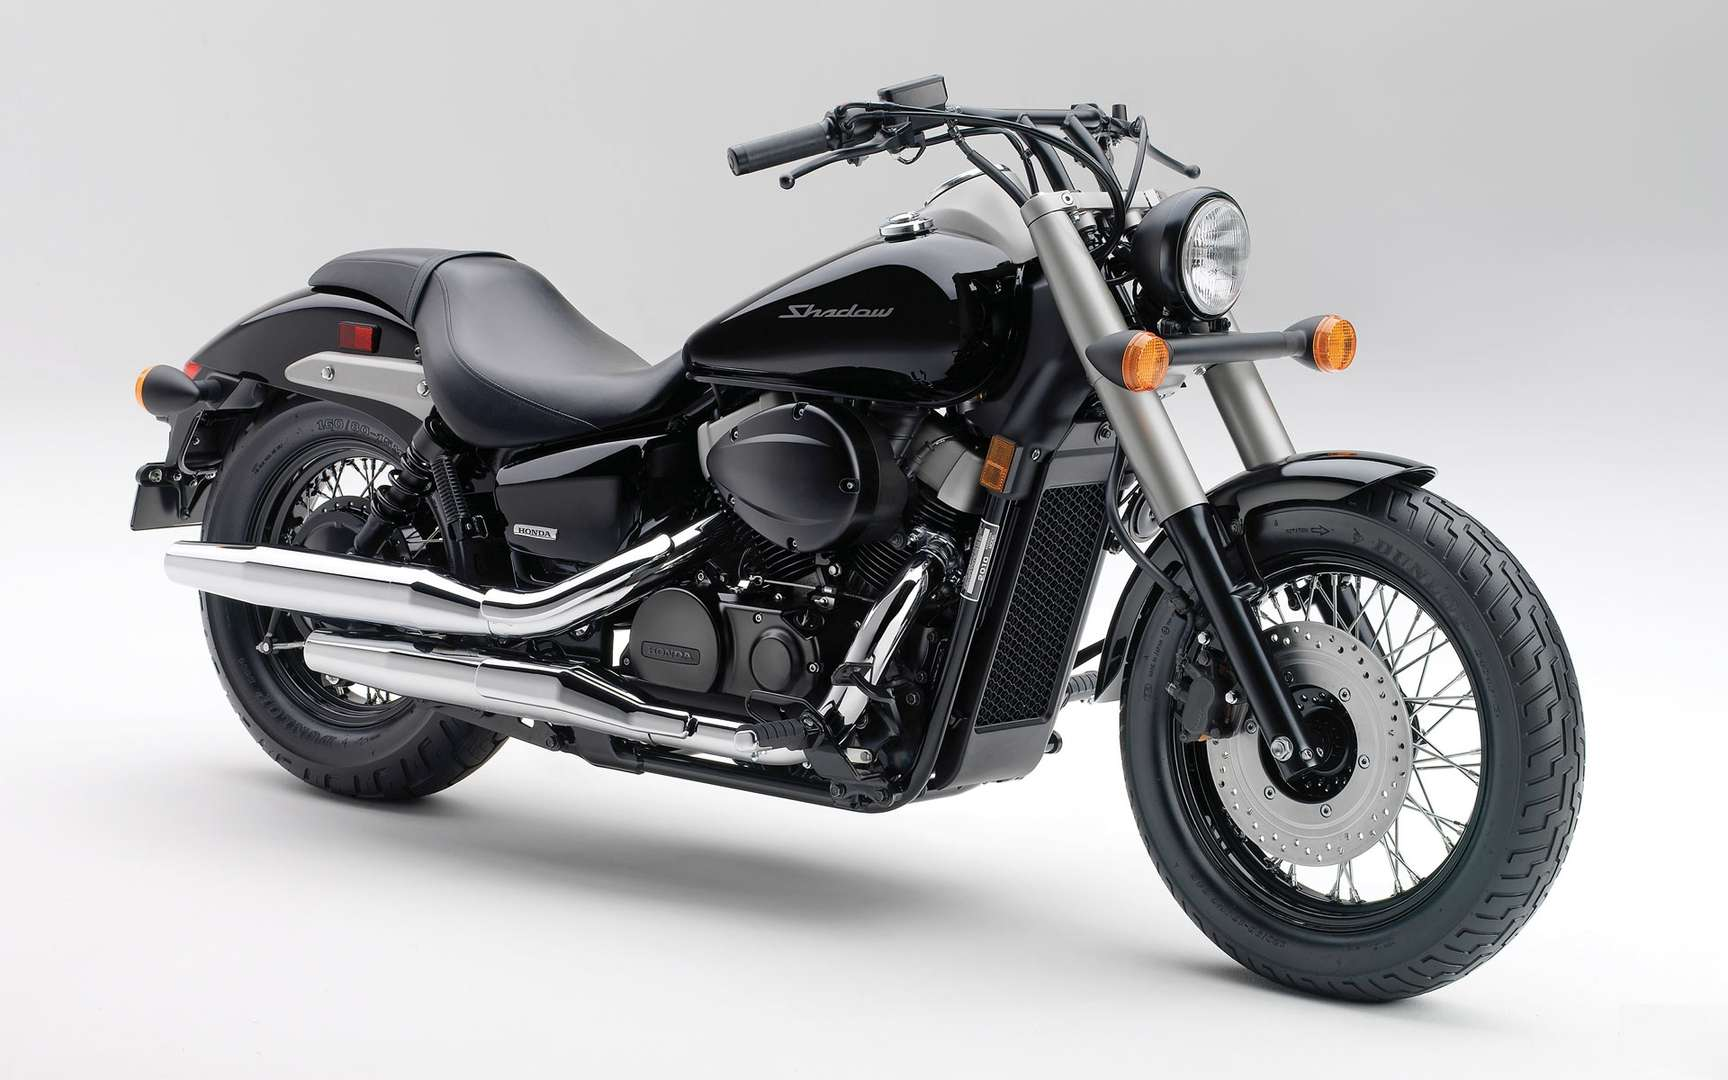 Honda Shadow #7025189